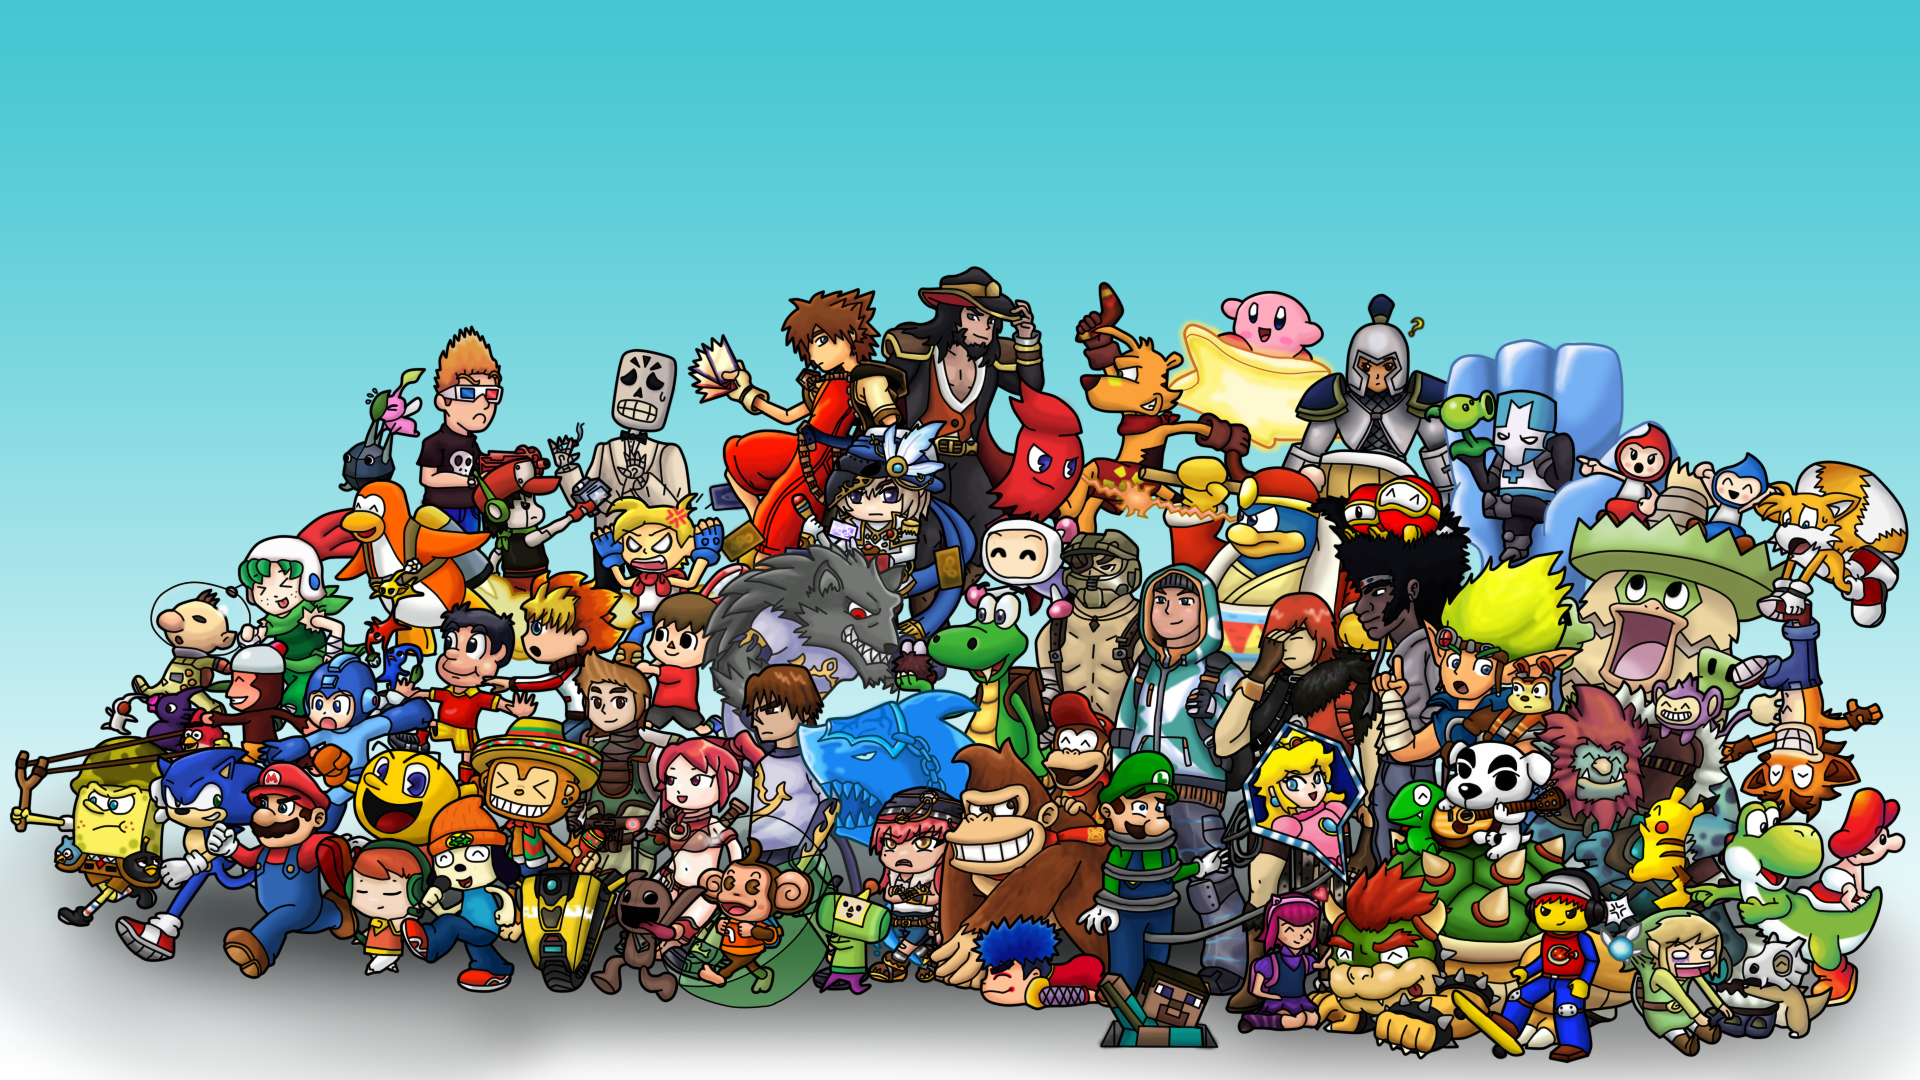 Group of Greatest Video Game Music 2 Wallpaper